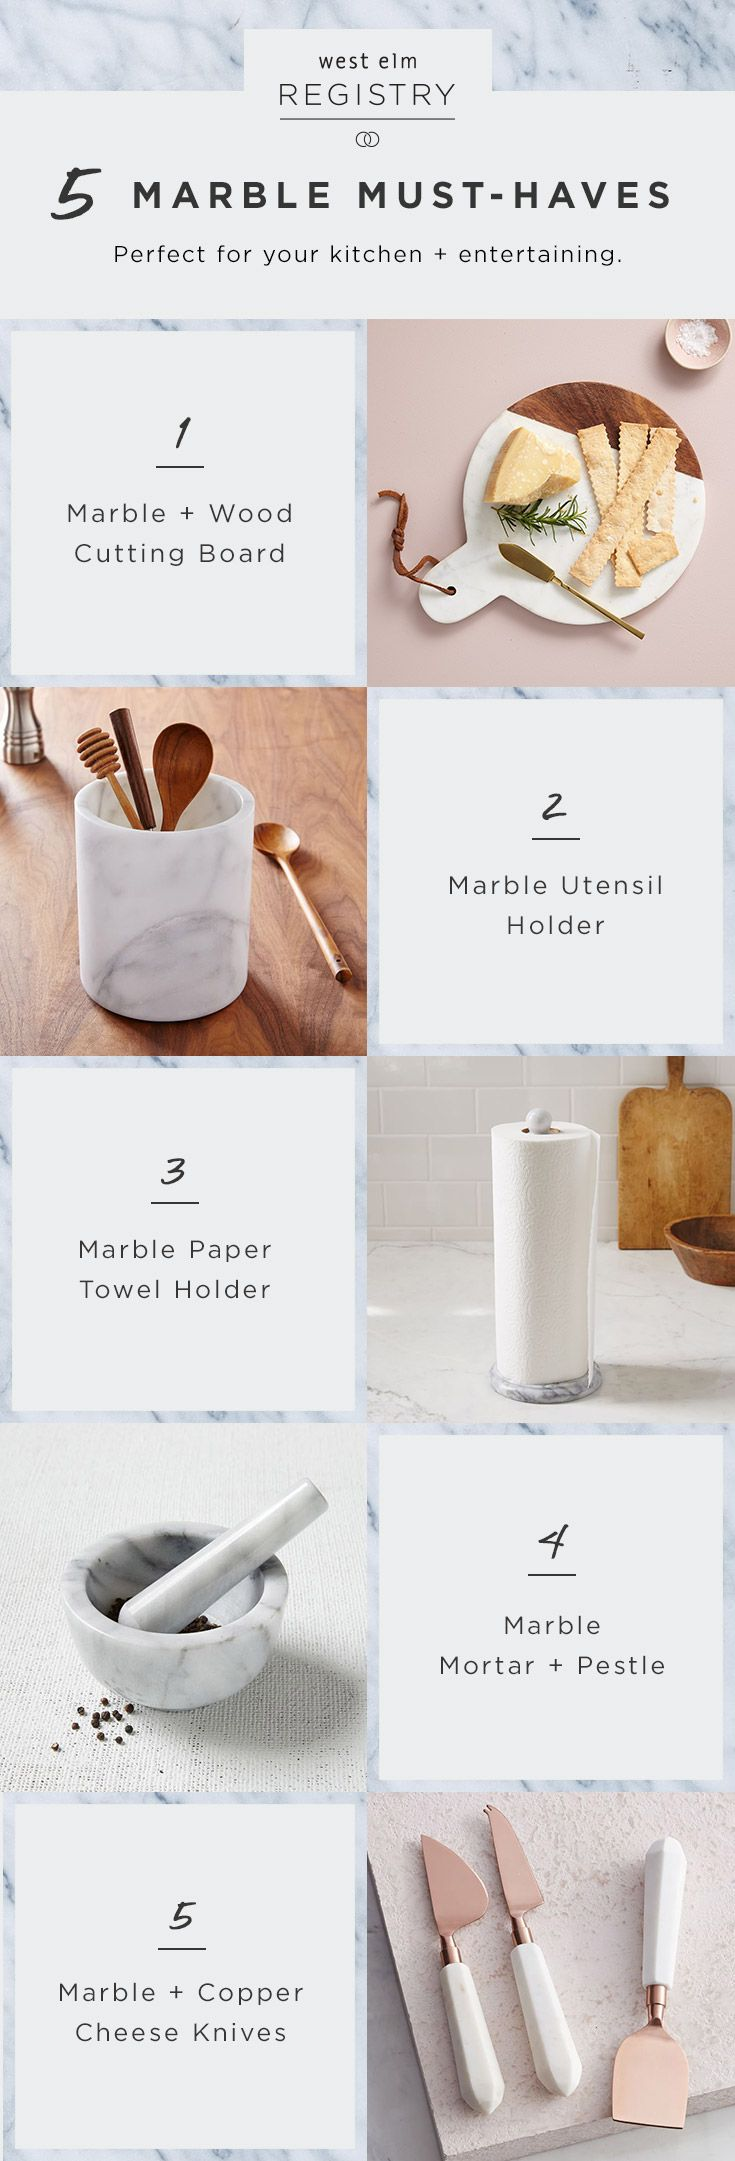 marble kitchen accessories black sinks engaged these are wedding registry must haves head over to westelm com get your started